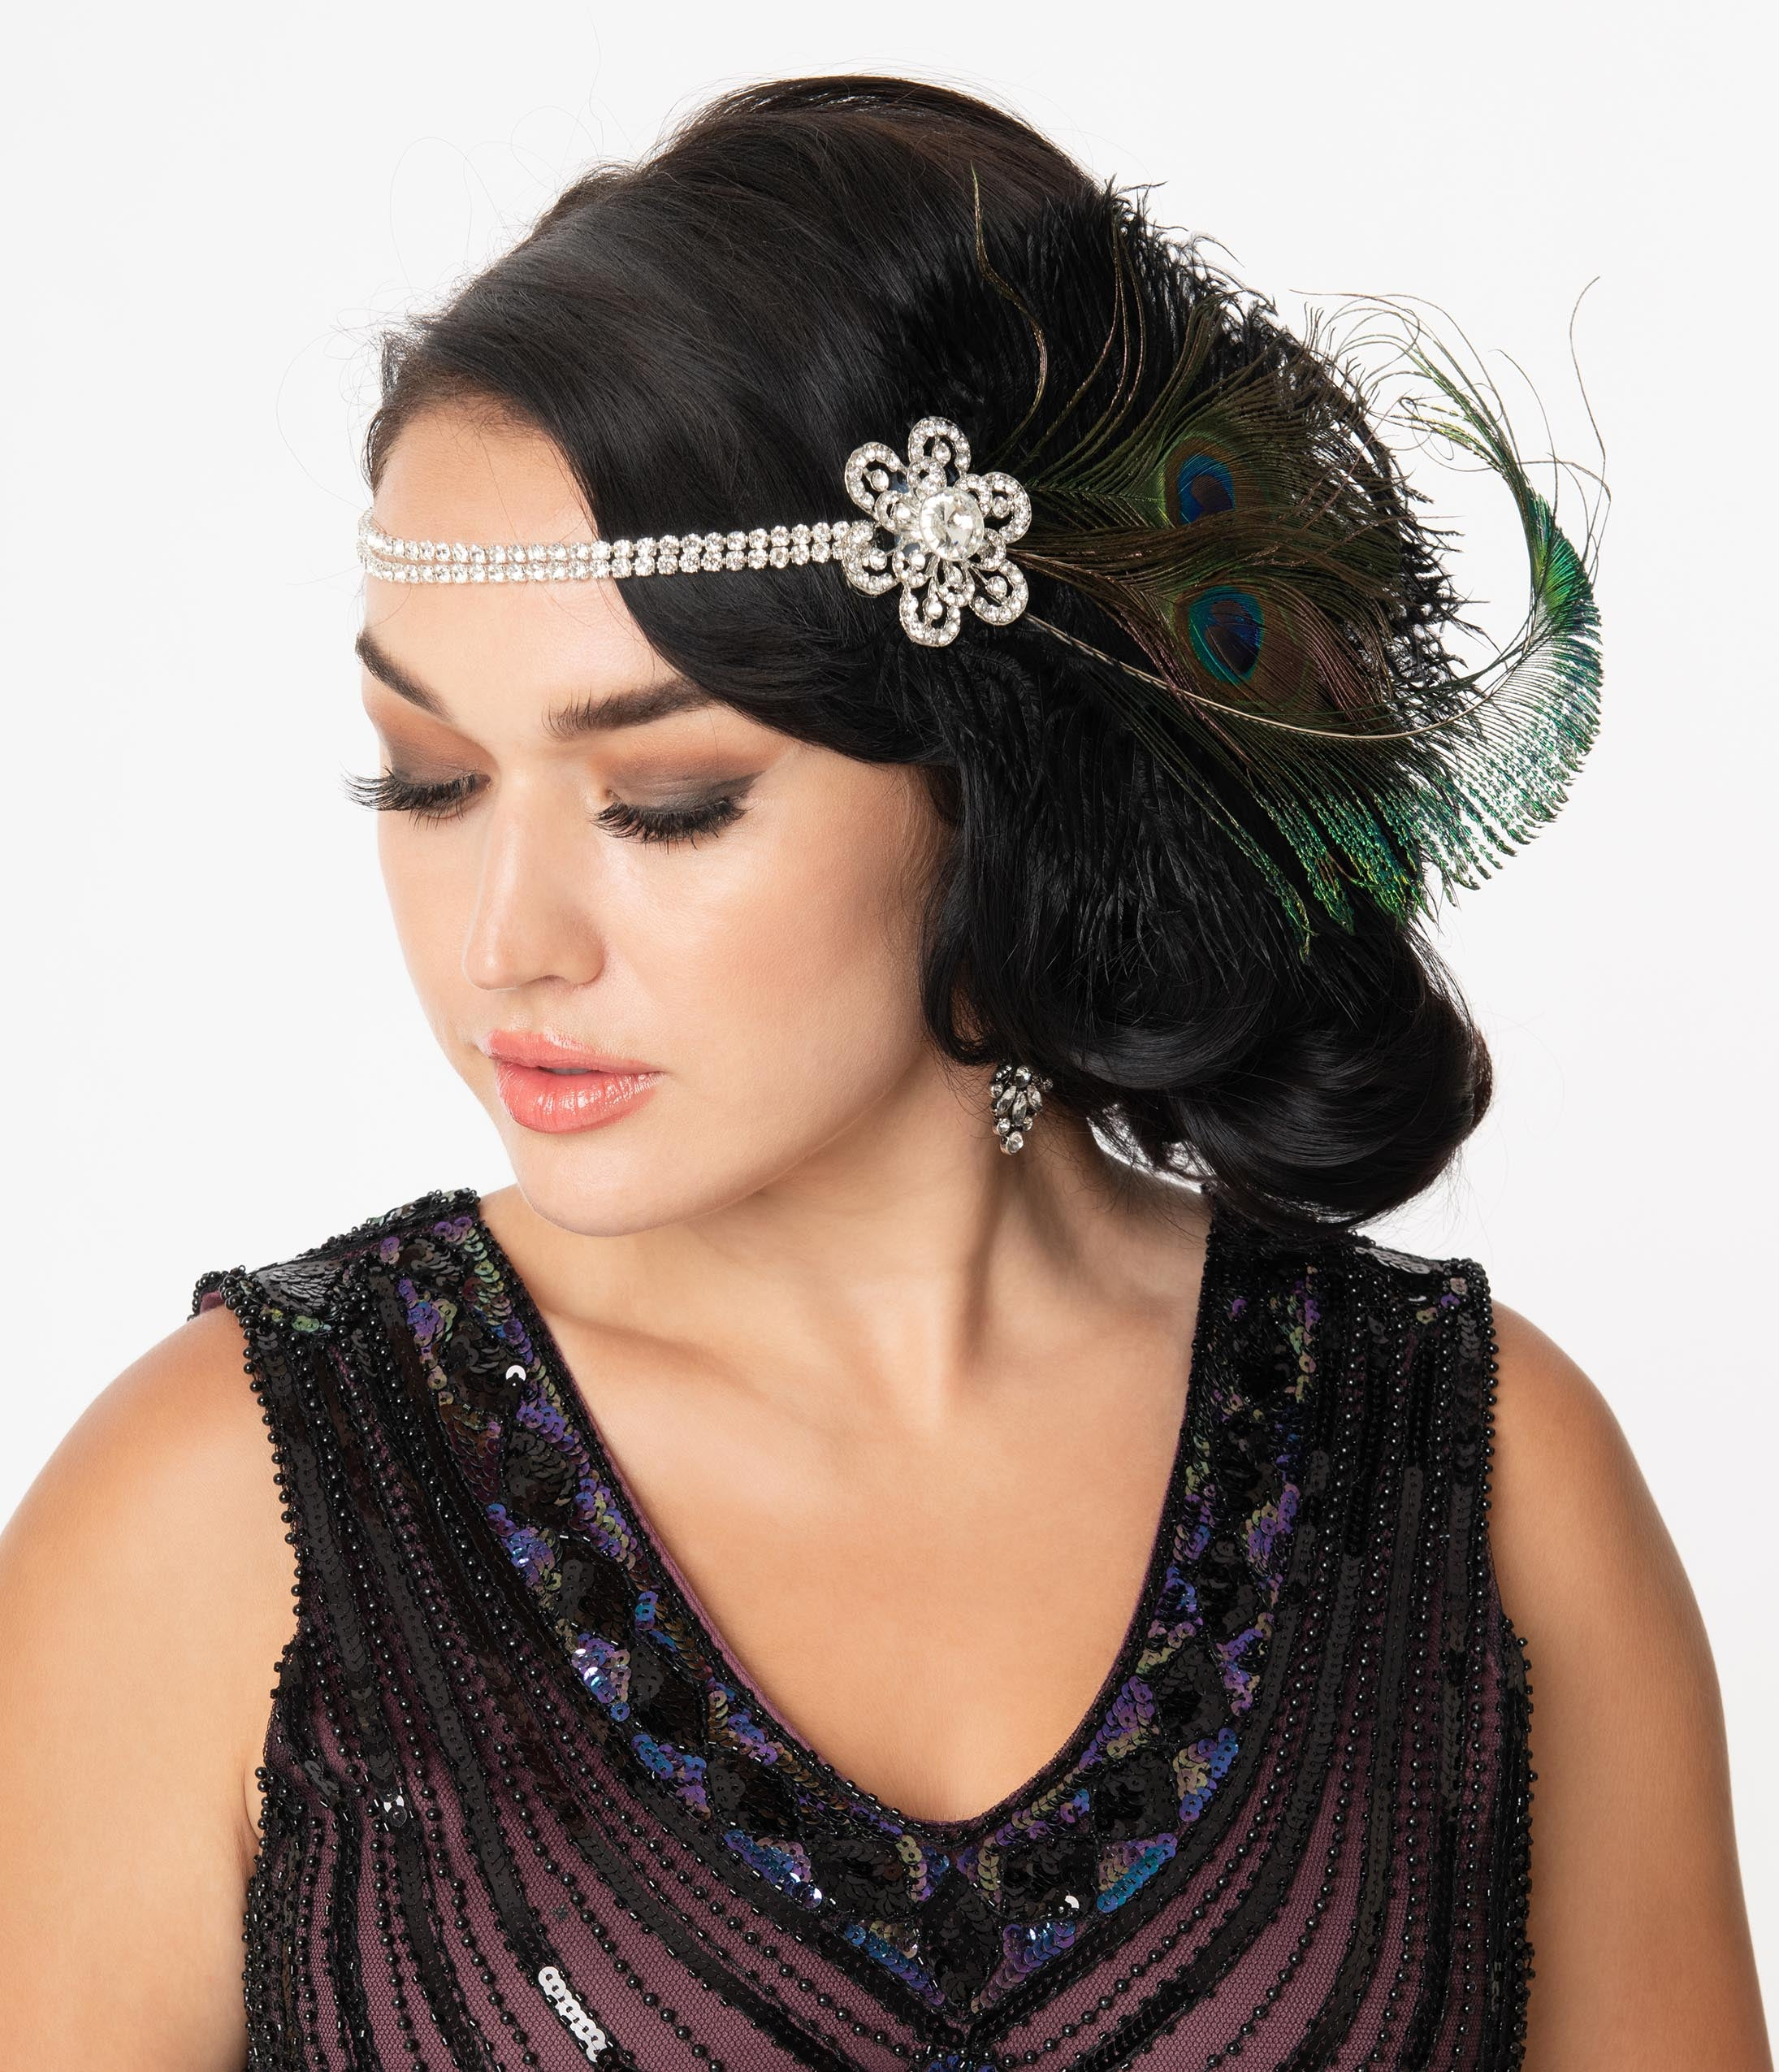 1920s Headband, Headpiece & Hair Accessory Styles Unique Vintage Dual Peacock Feather  Rhinestone Floral Flapper Headband $36.00 AT vintagedancer.com